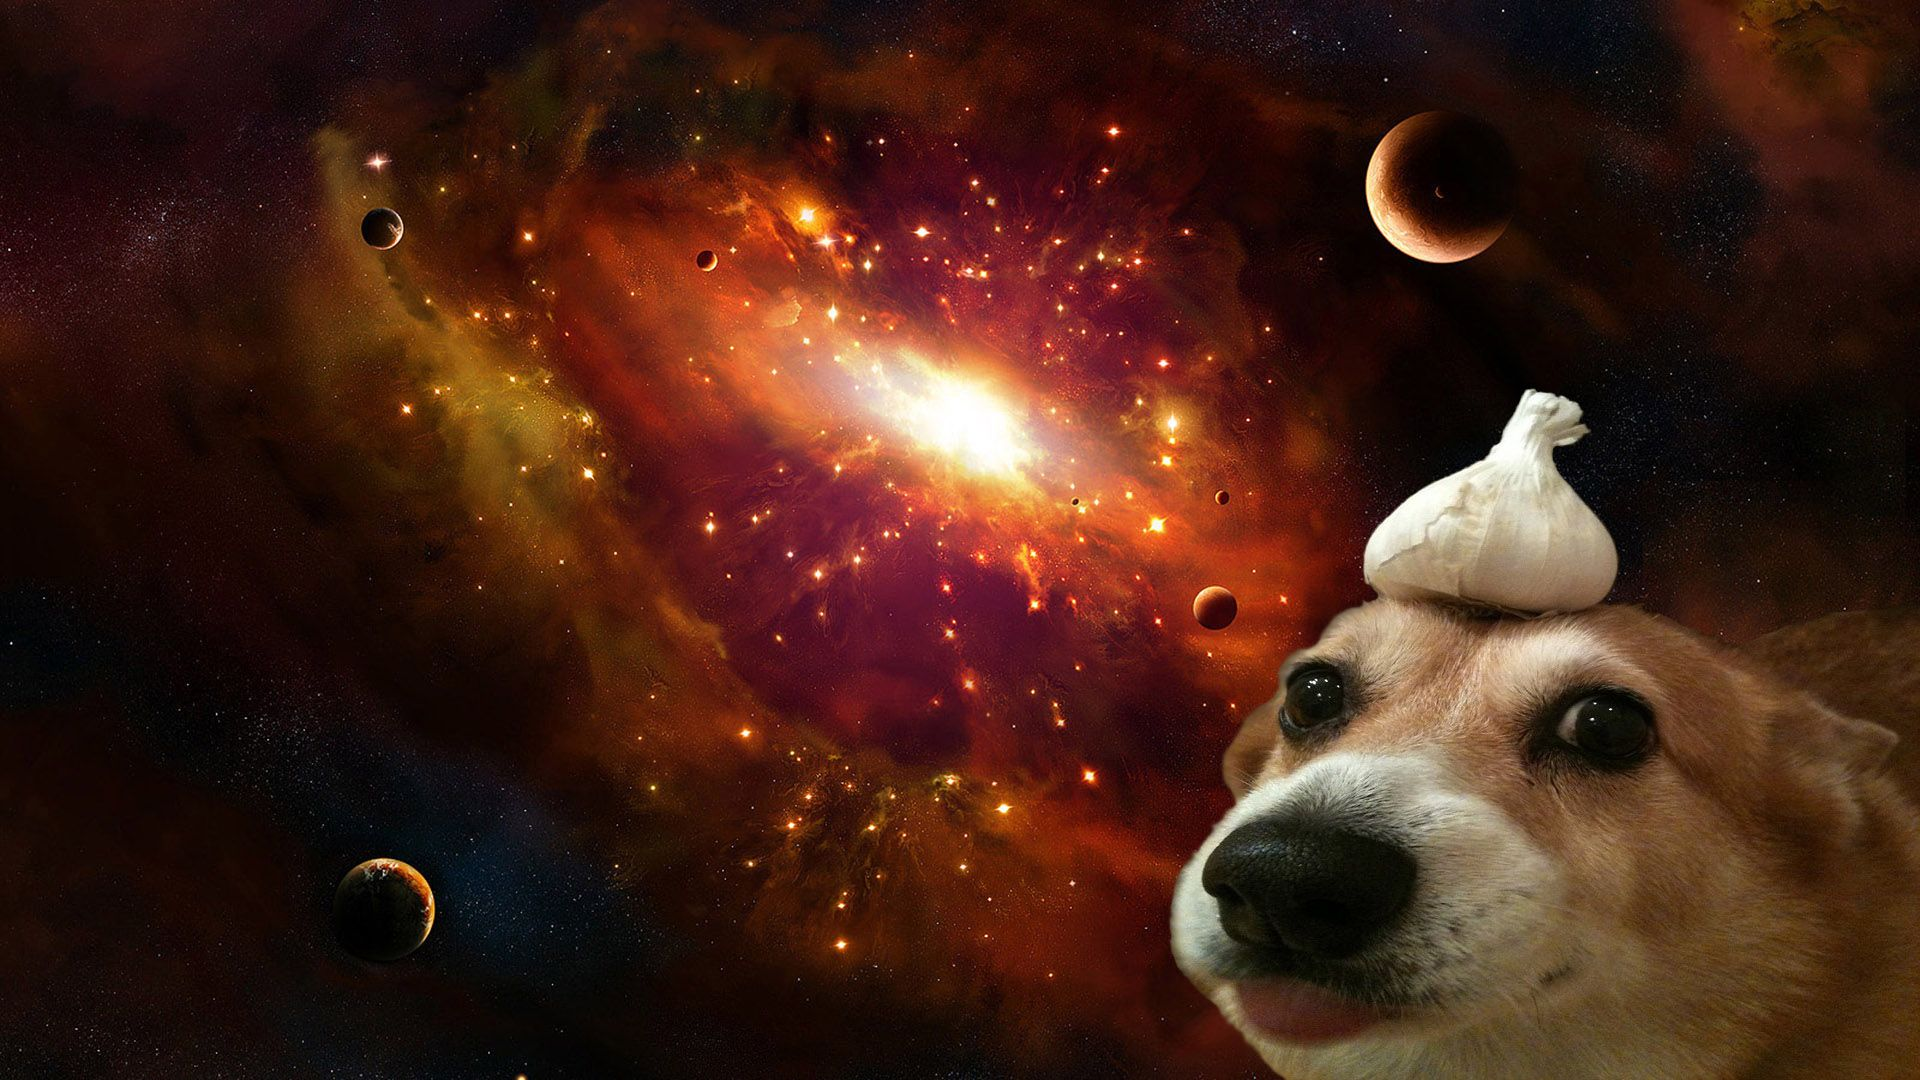 A Dog With Garlic On Its Head In Space 1920x1080 Fotos The Wonders